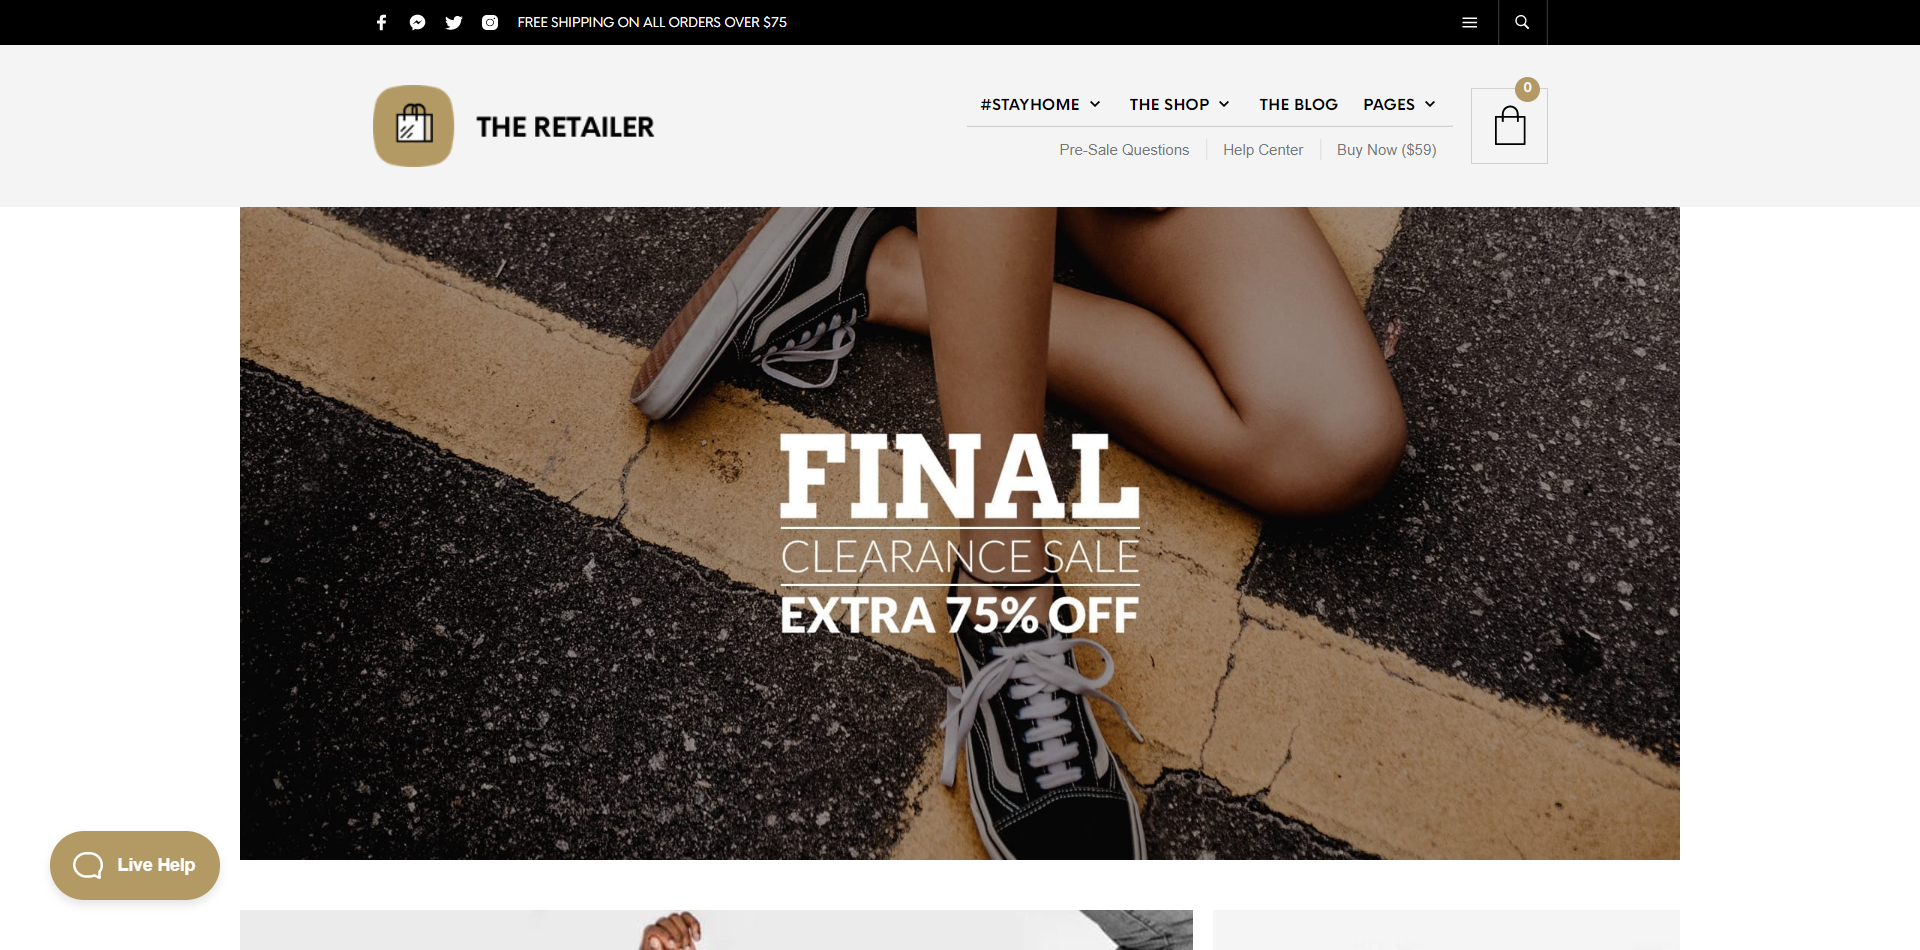 The Retailer WordPress theme Homepage Screenshot